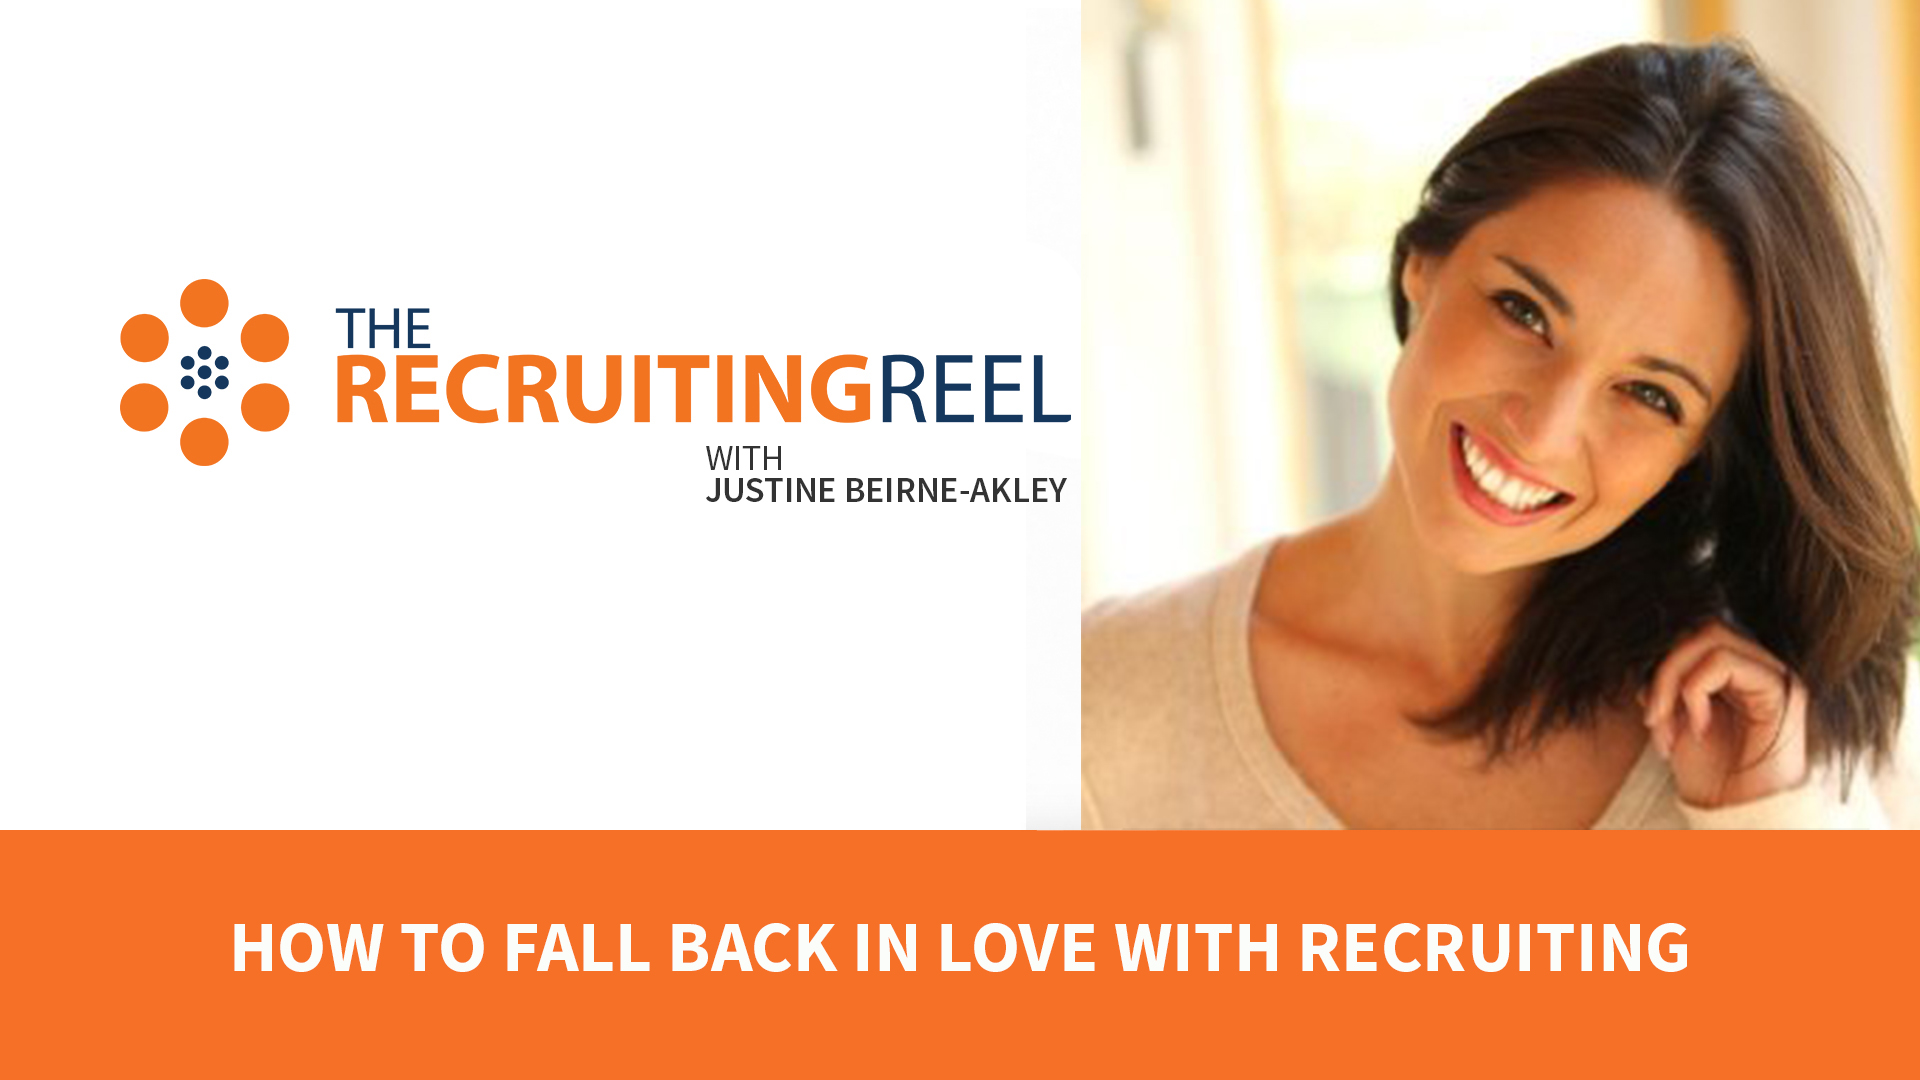 How To Fall Back In Love With Recruiting